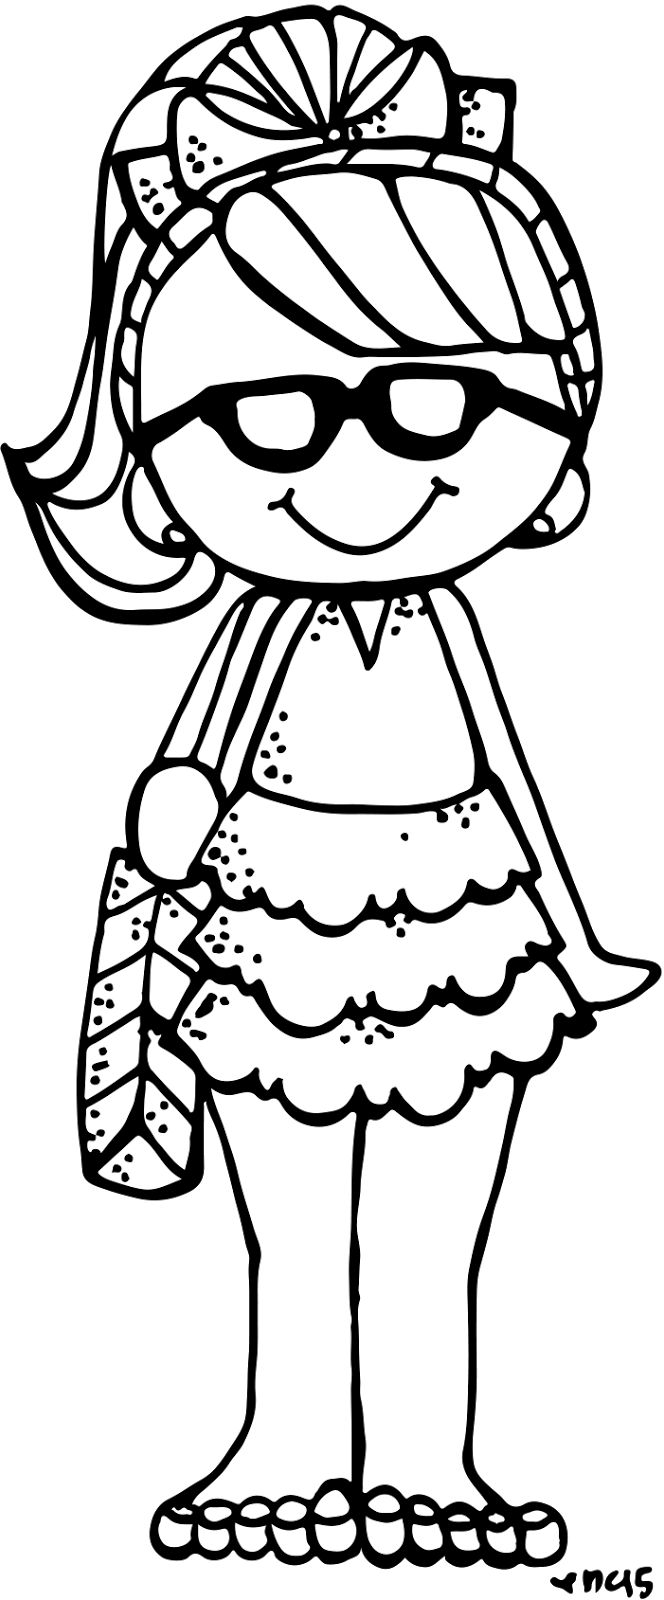 29 best lds coloring pages images on pinterest auto electrical252 best clip art images on pinterest